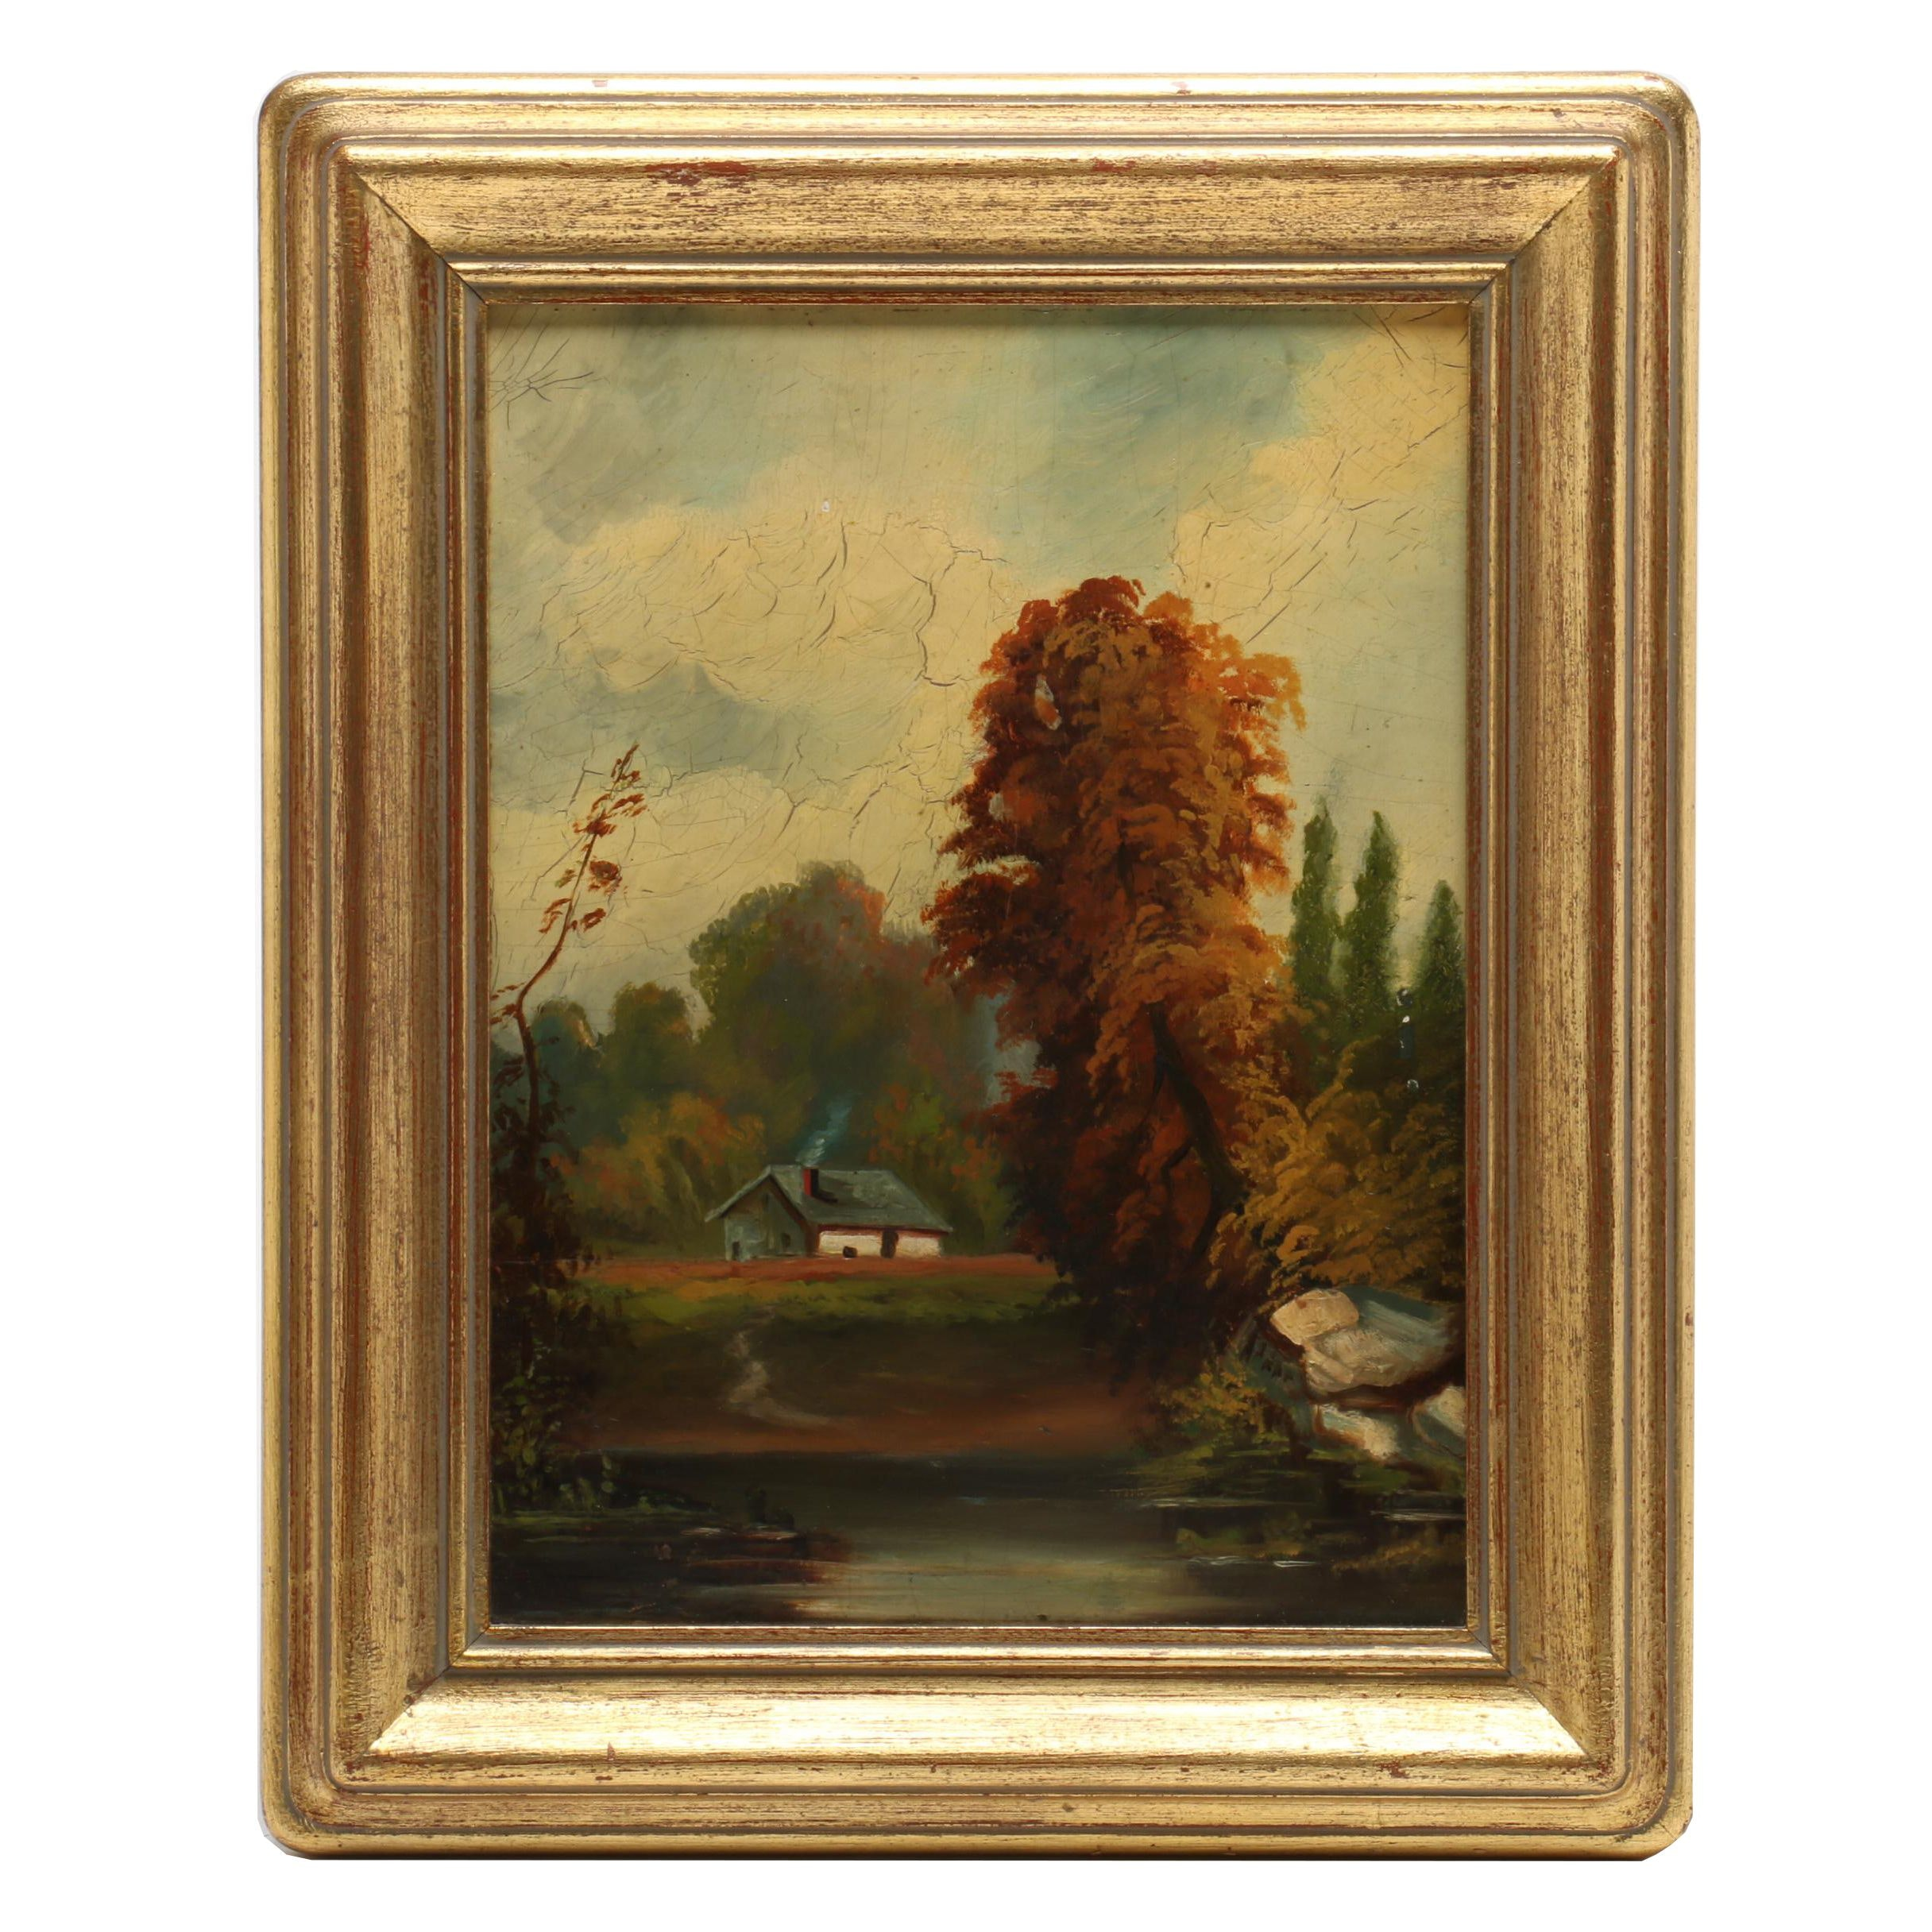 Minnie Bath Houser Oil Painting of House in Landscape